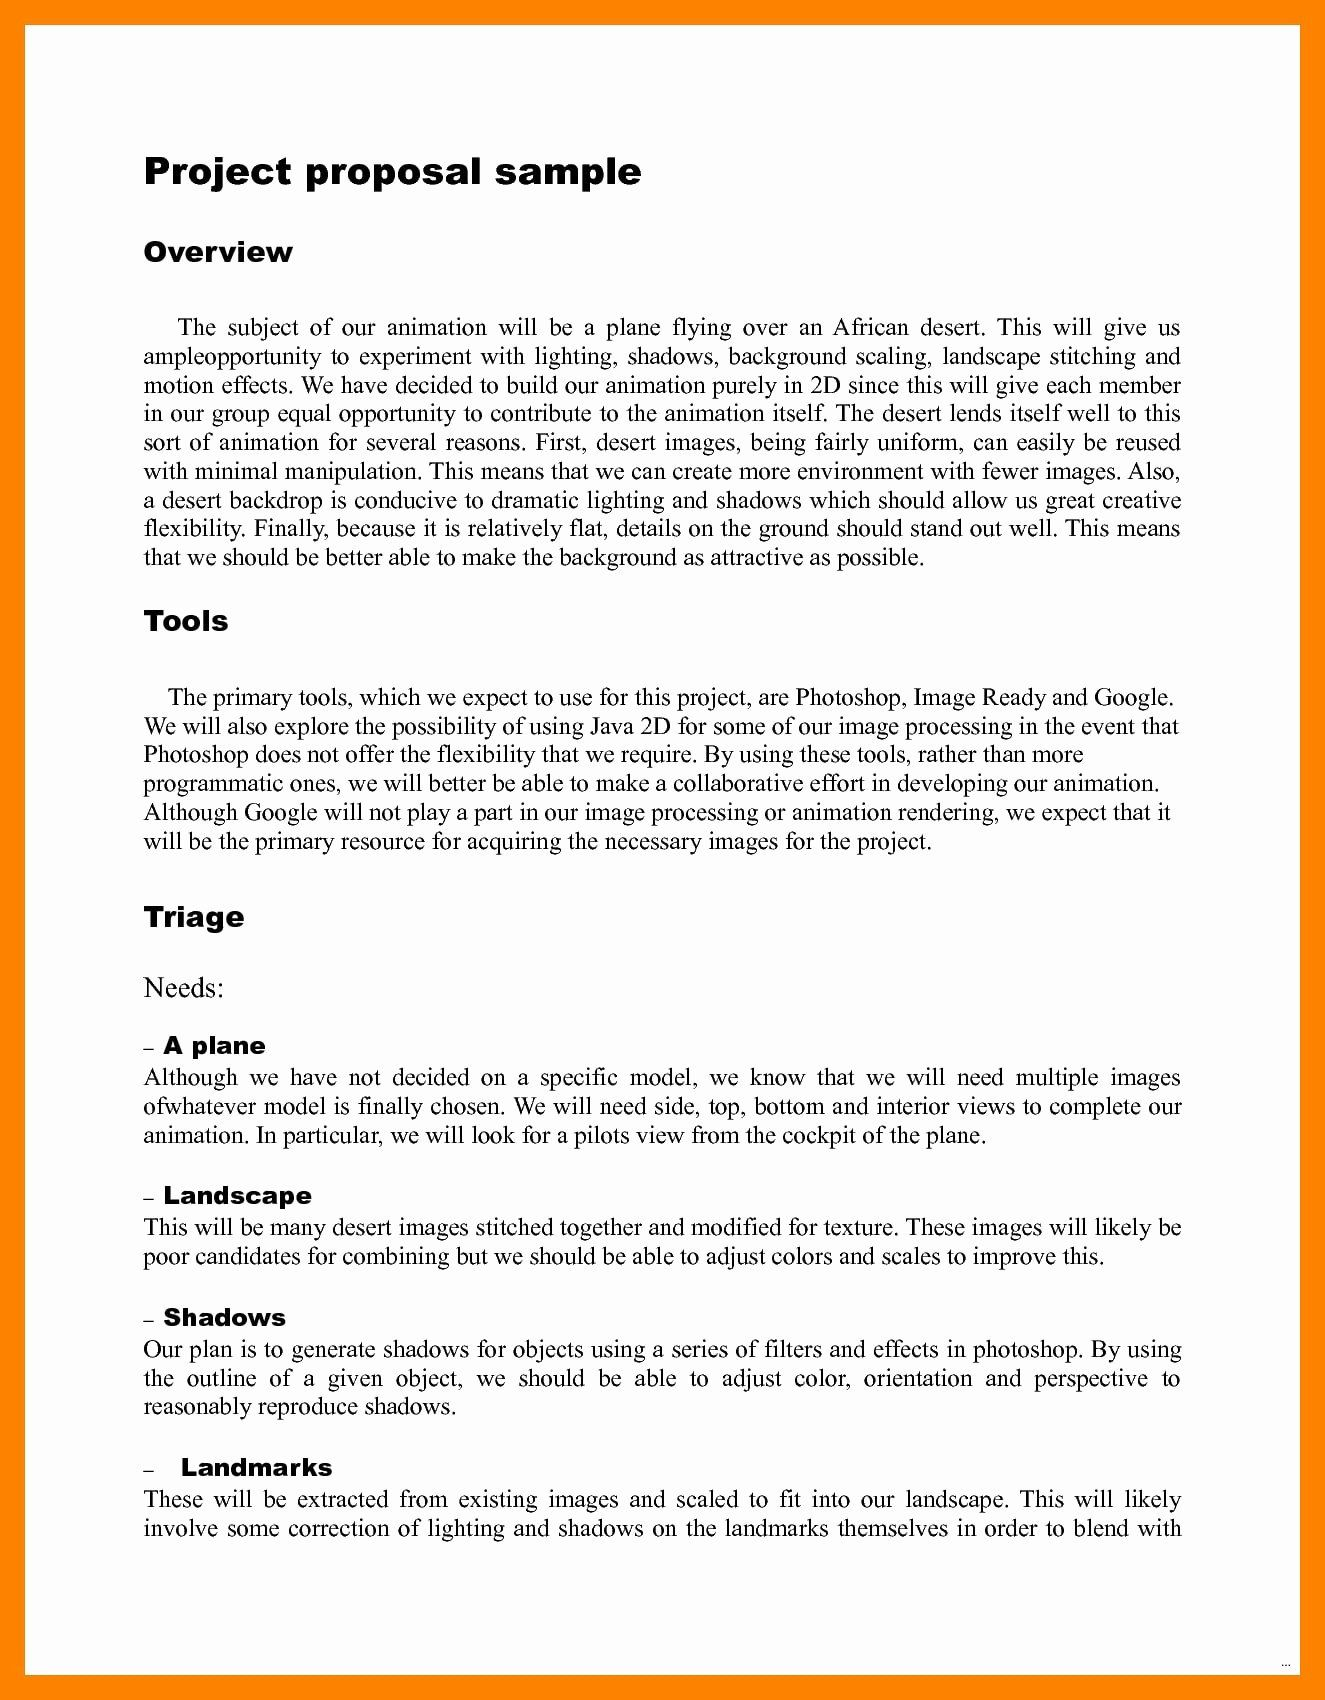 Art Project Proposal Example Pdf Lovely 9 Multimedia Project Proposal Examples Pdf In 2020 Project Proposal Example Project Proposal Template Project Proposal